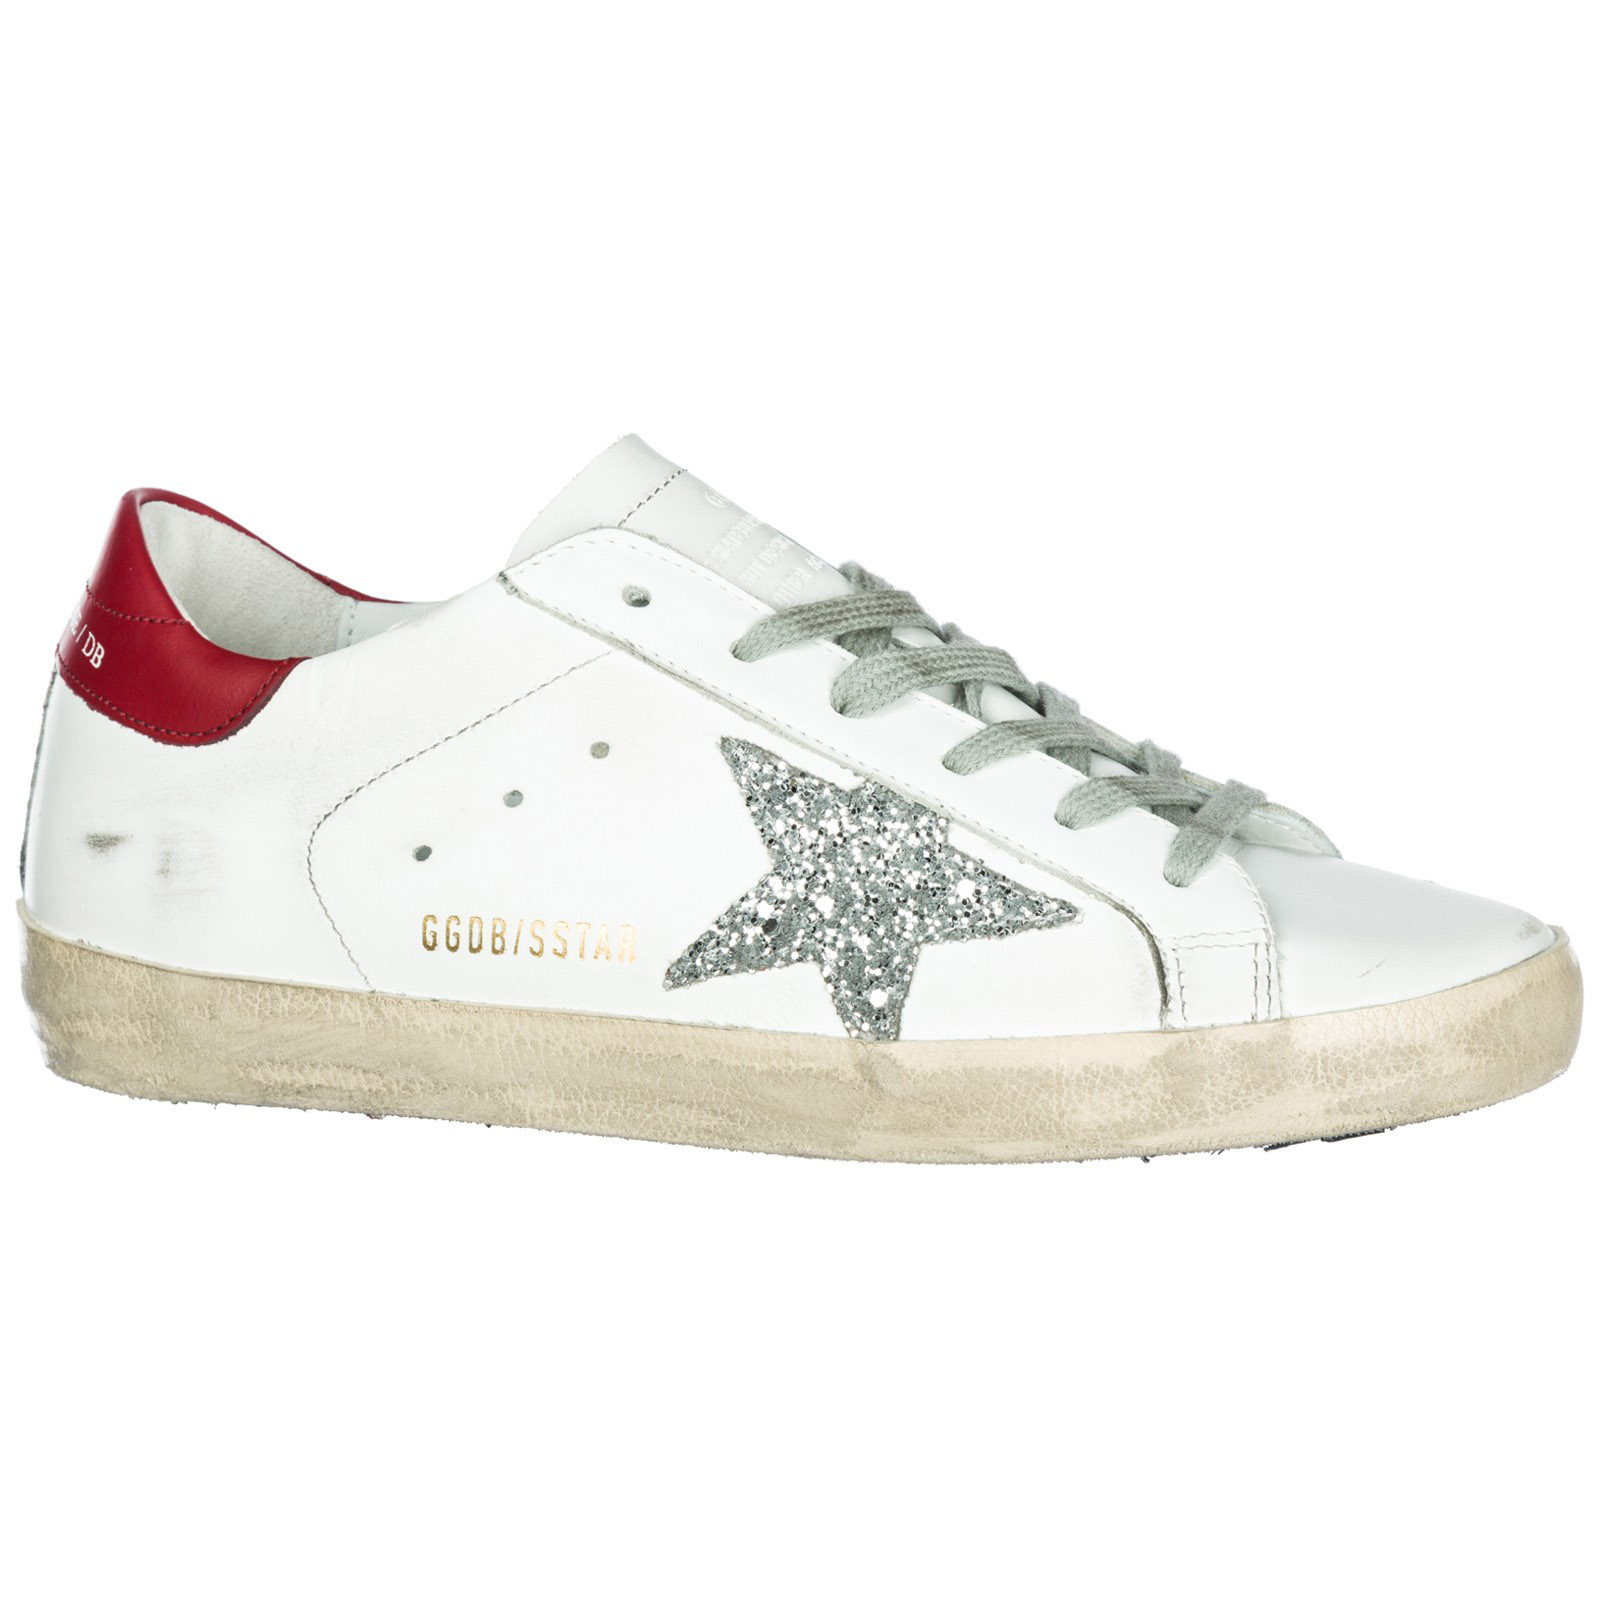 Sneakers Golden Goose Superstar G33WS590.H16 white - red - silver ... fc63c4f749